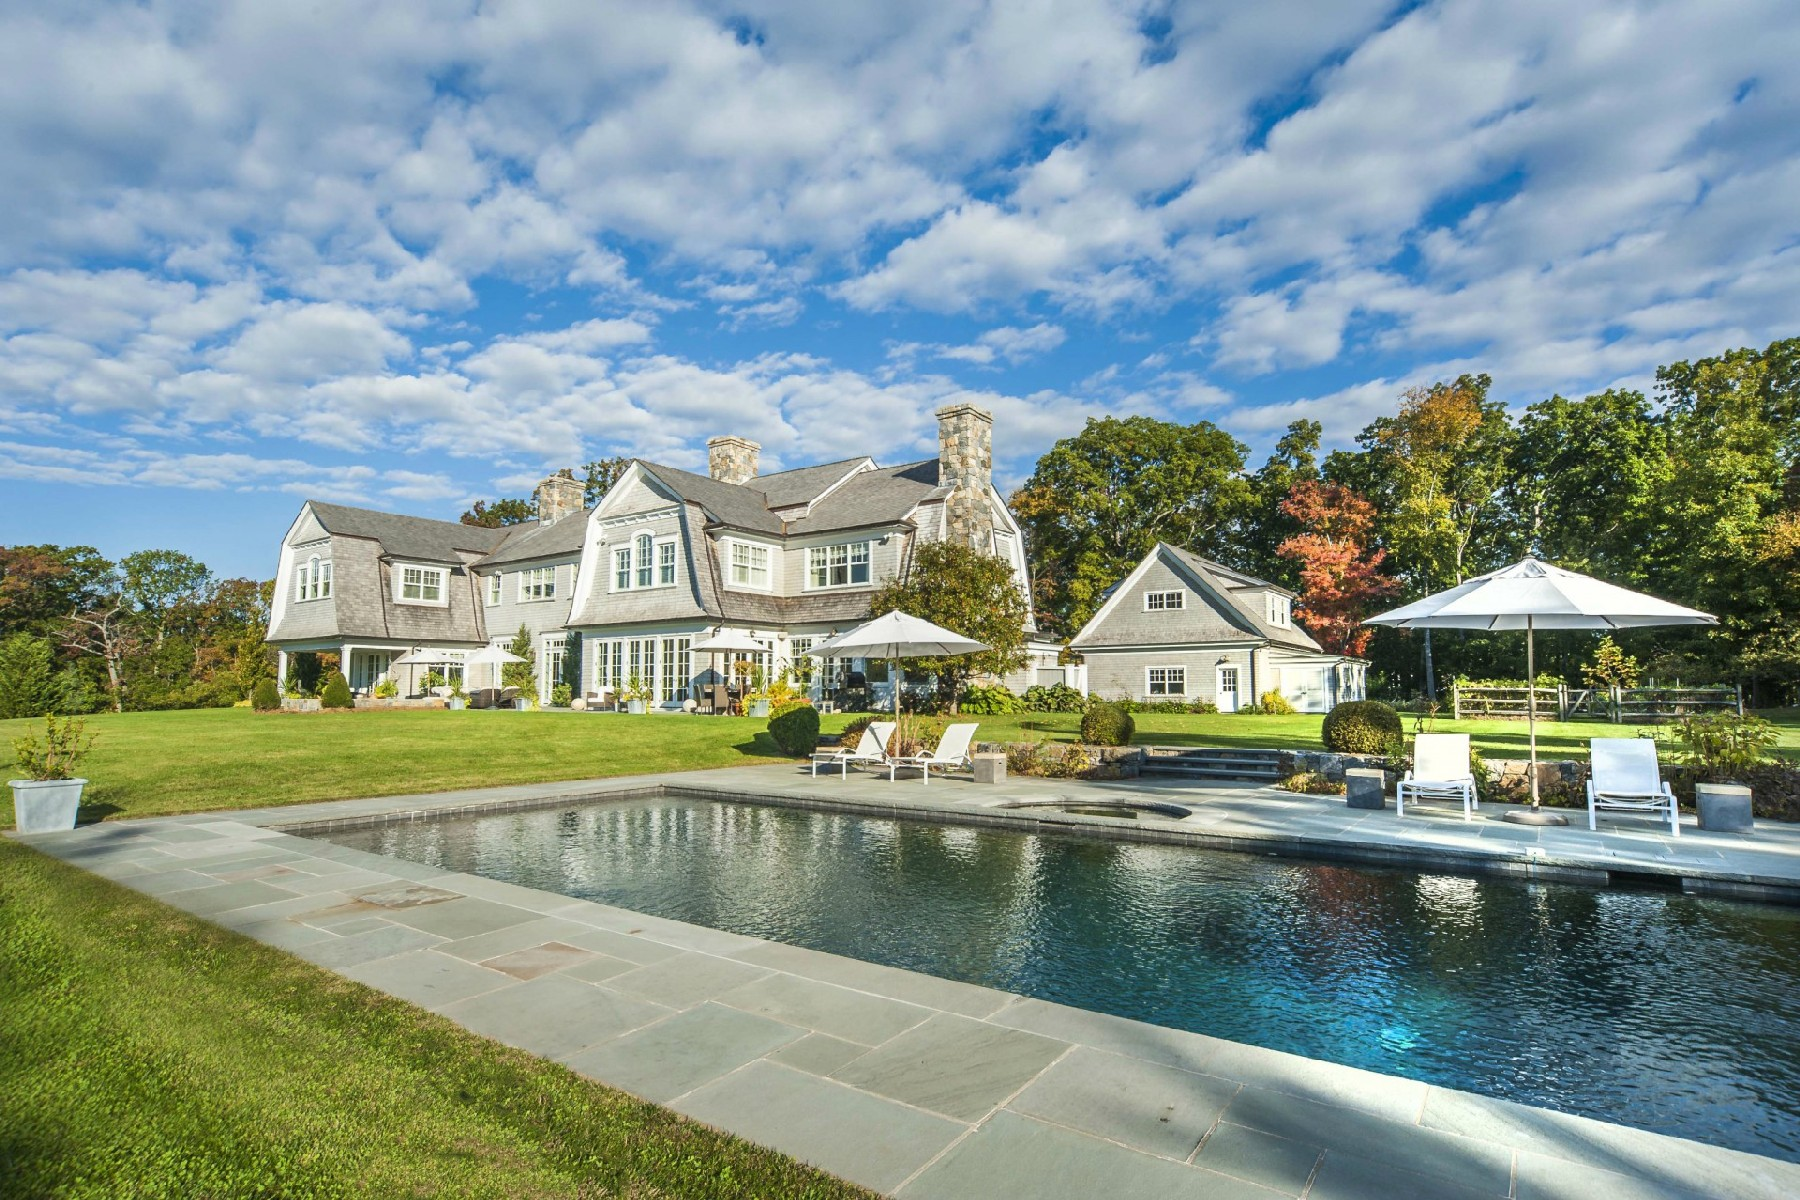 Single Family Home for Sale at Magnificent Estate on 7.1 Acre Island 20 Juniper Road Darien, Connecticut 06820 United States